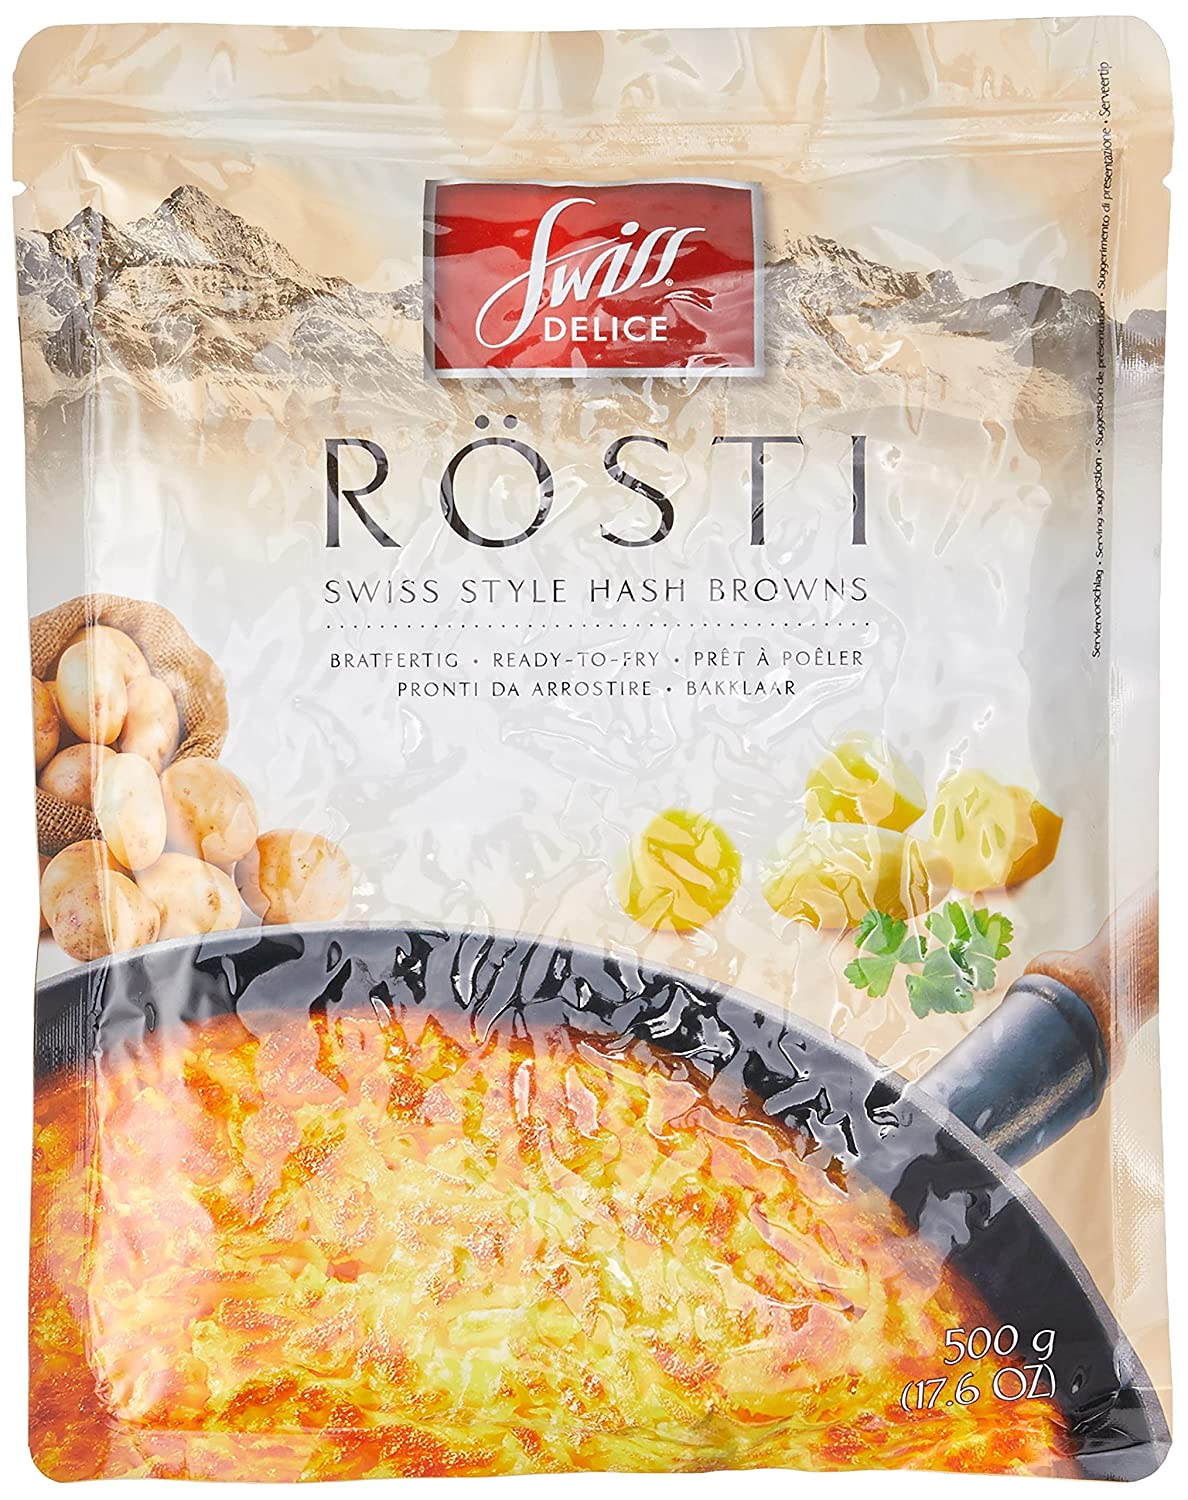 Swiss Delice Rosti Hash Browns 500g Multipack Al sold out. 67% OFF of fixed price of 10